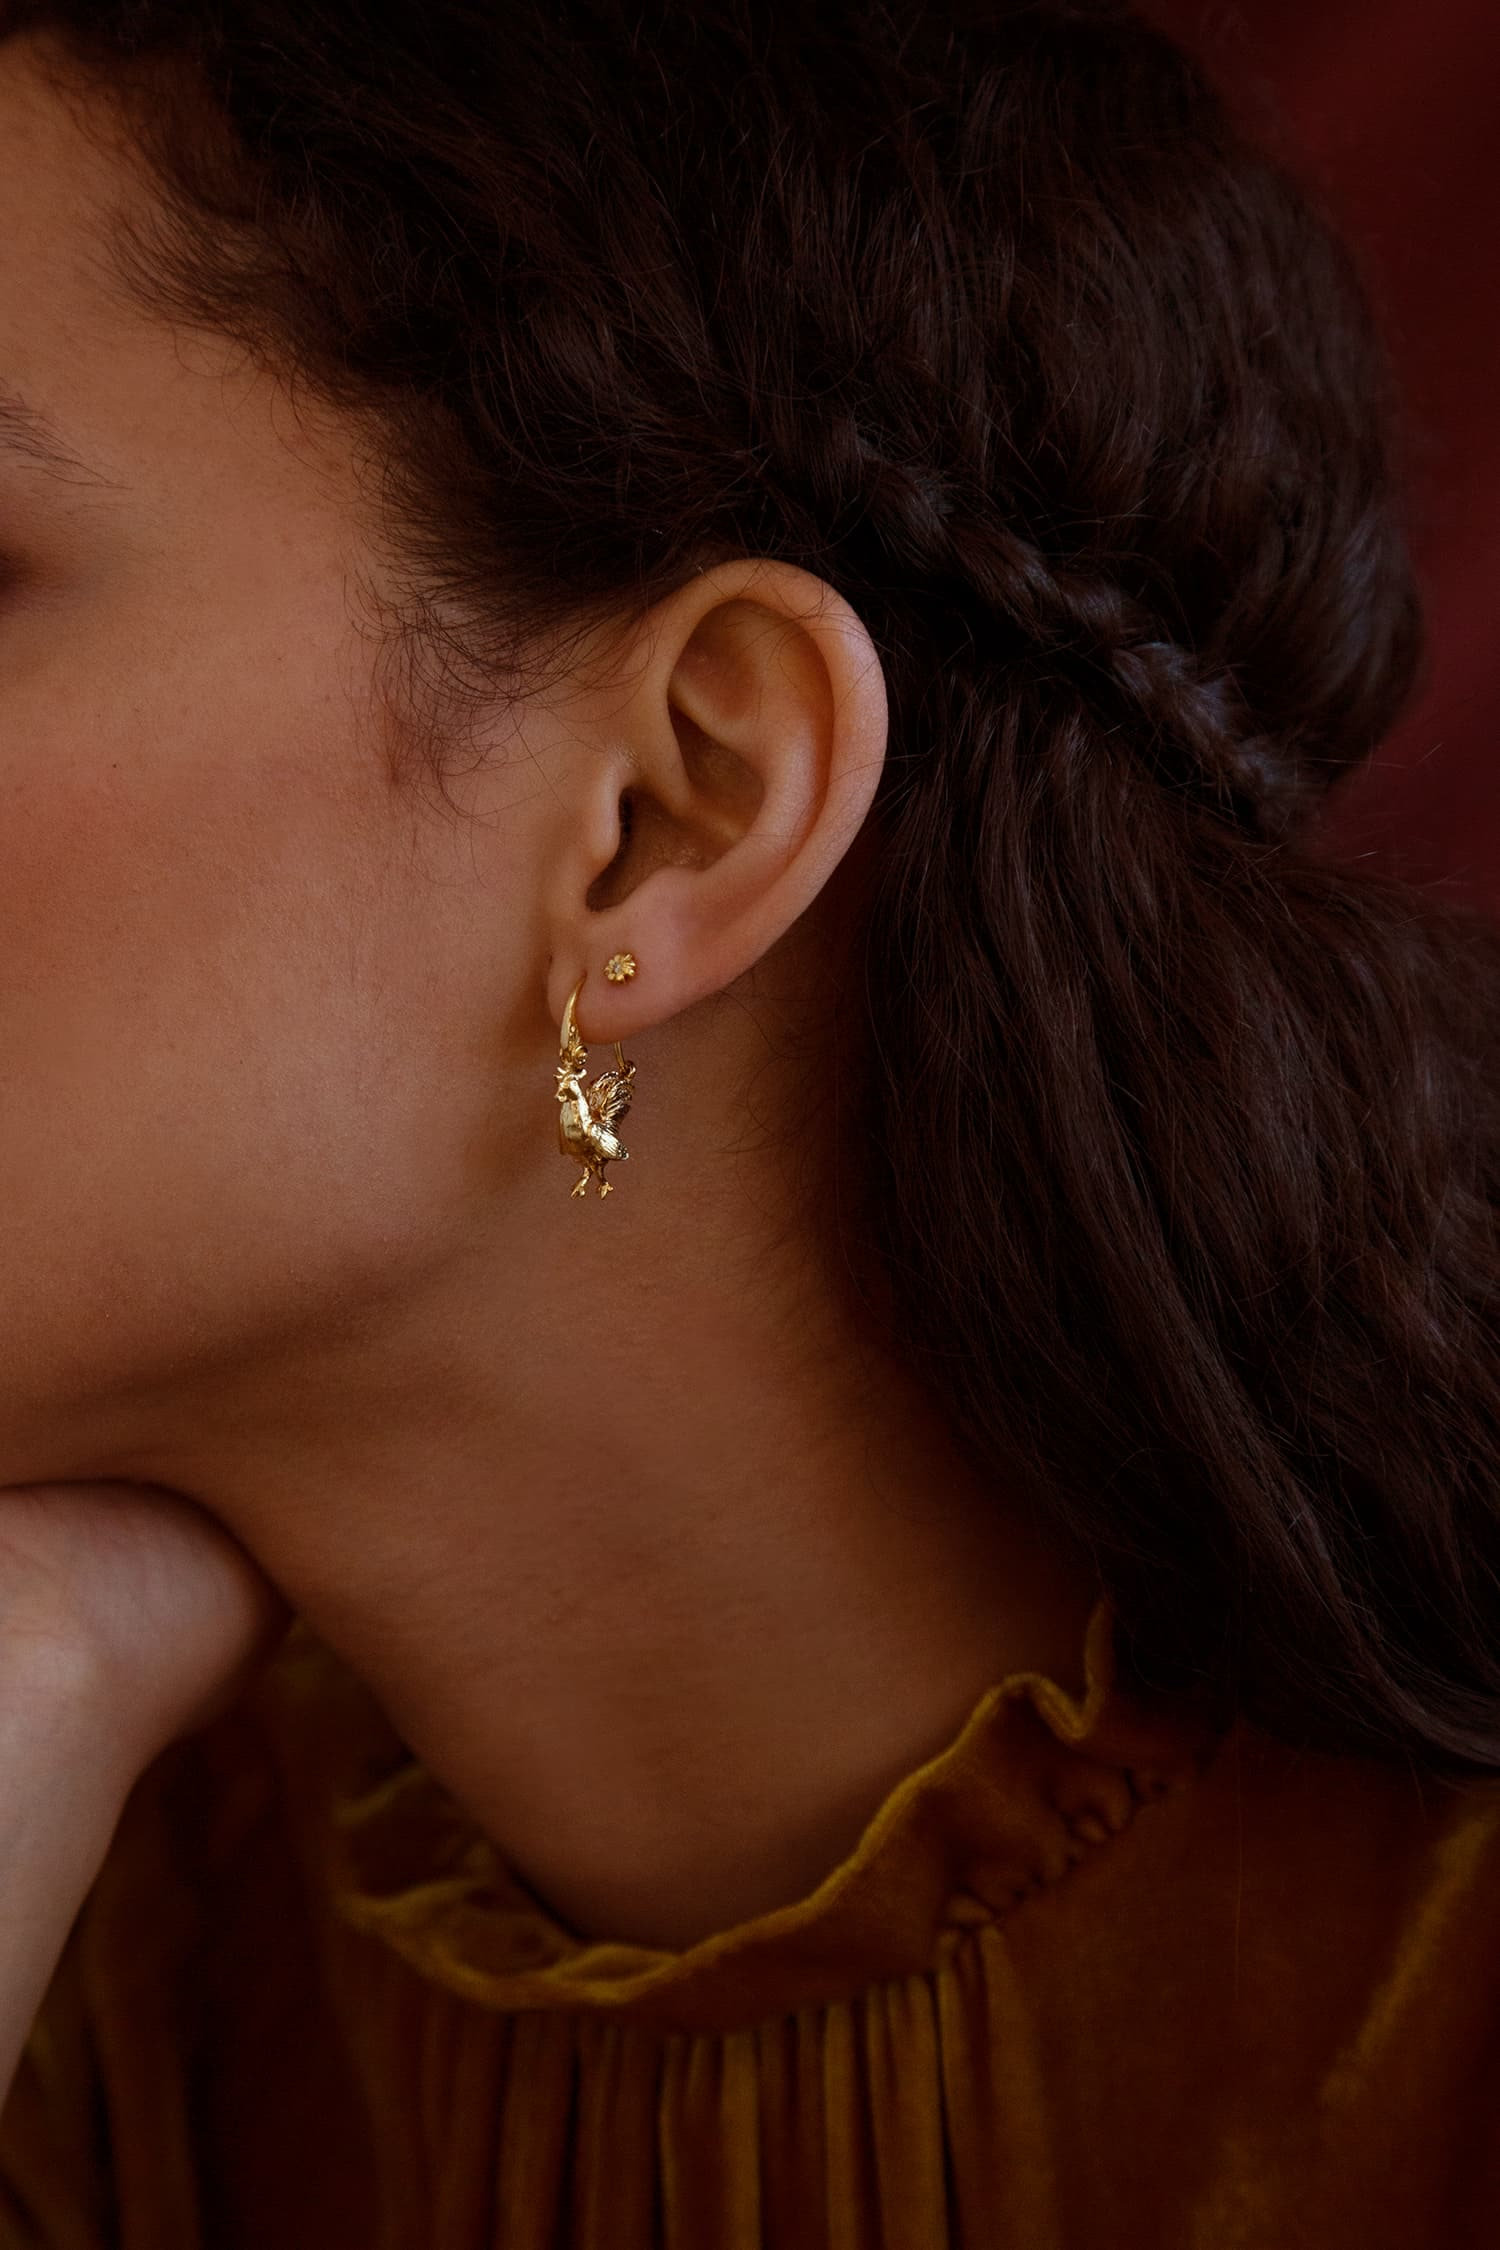 Model wears Fables small Rooster ornate Creole Earrings in gold plate